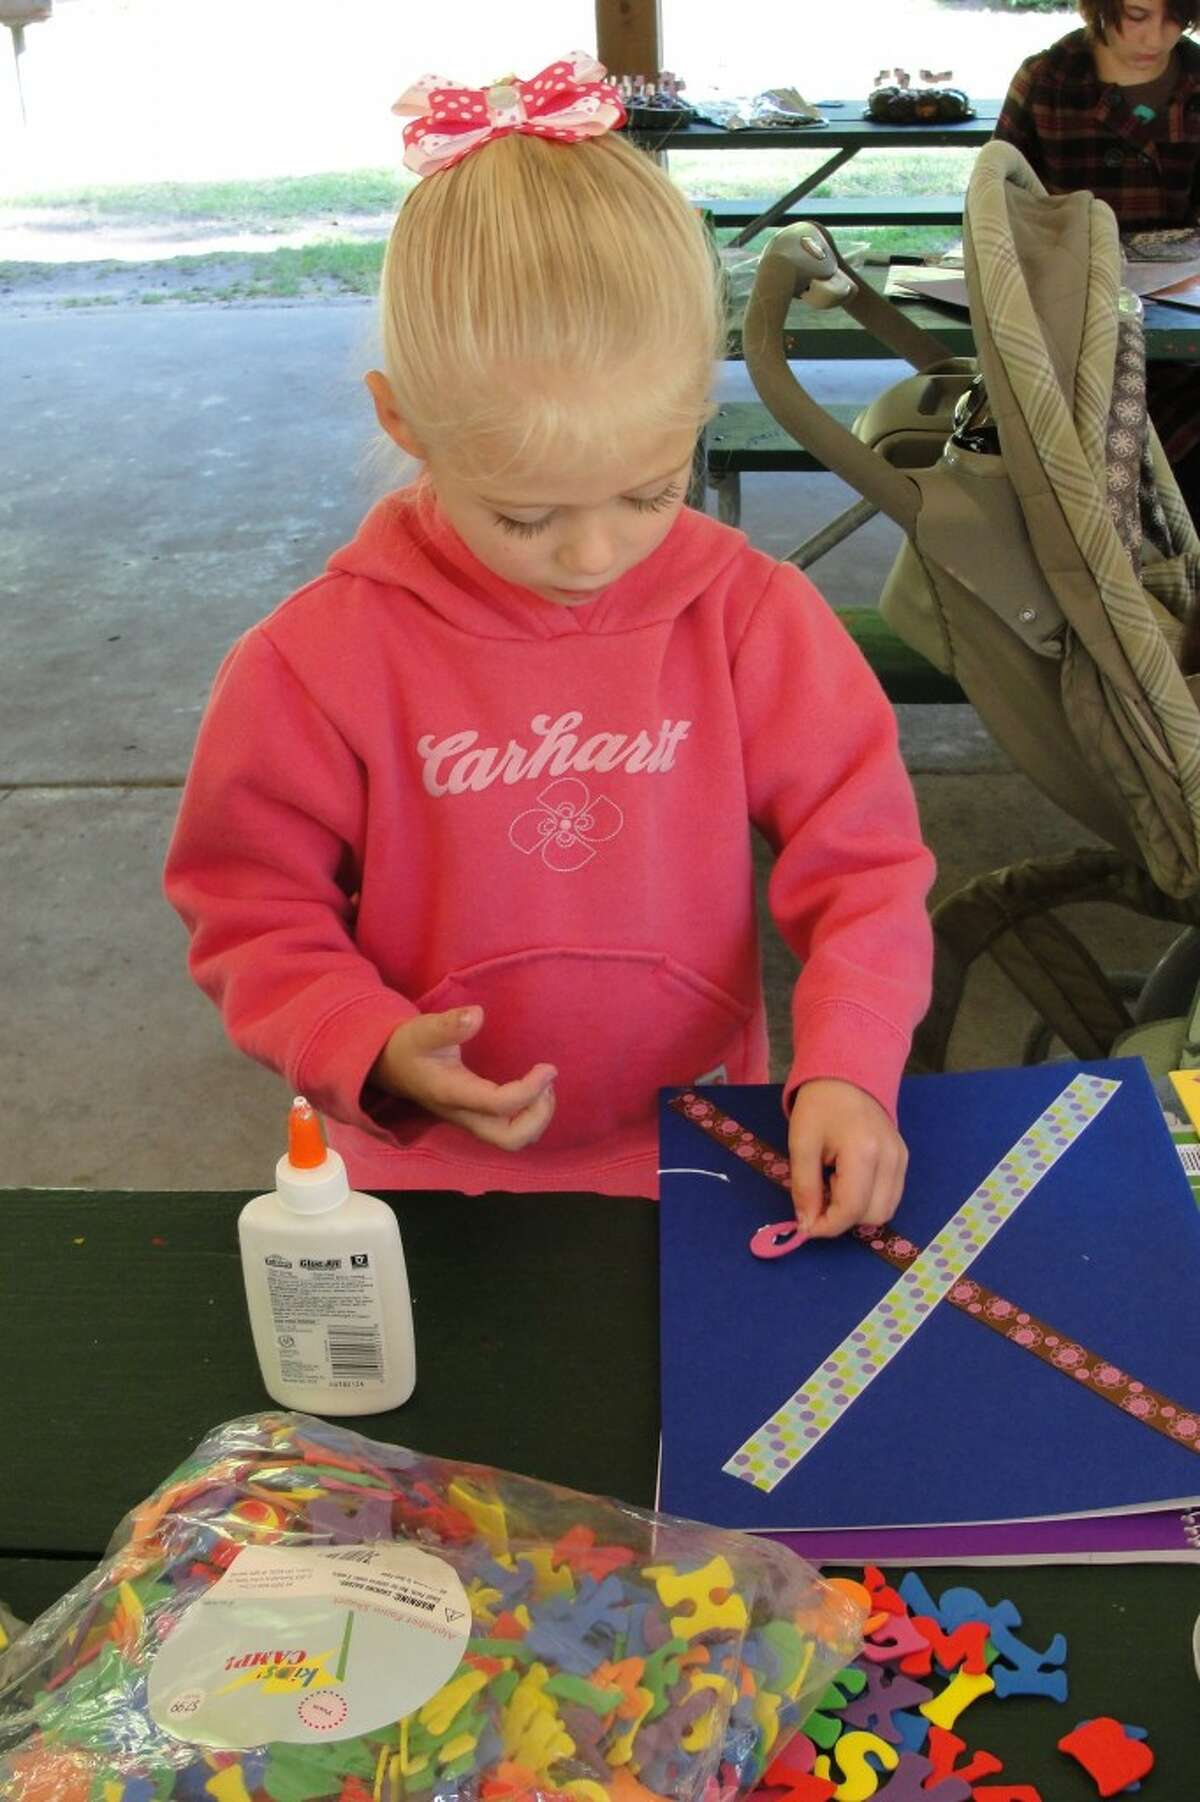 PERSONAL TOUCH: Caelyn, age 4, using foam letters to personalize her folder. (Herald Review photos/Shannon Hartley)